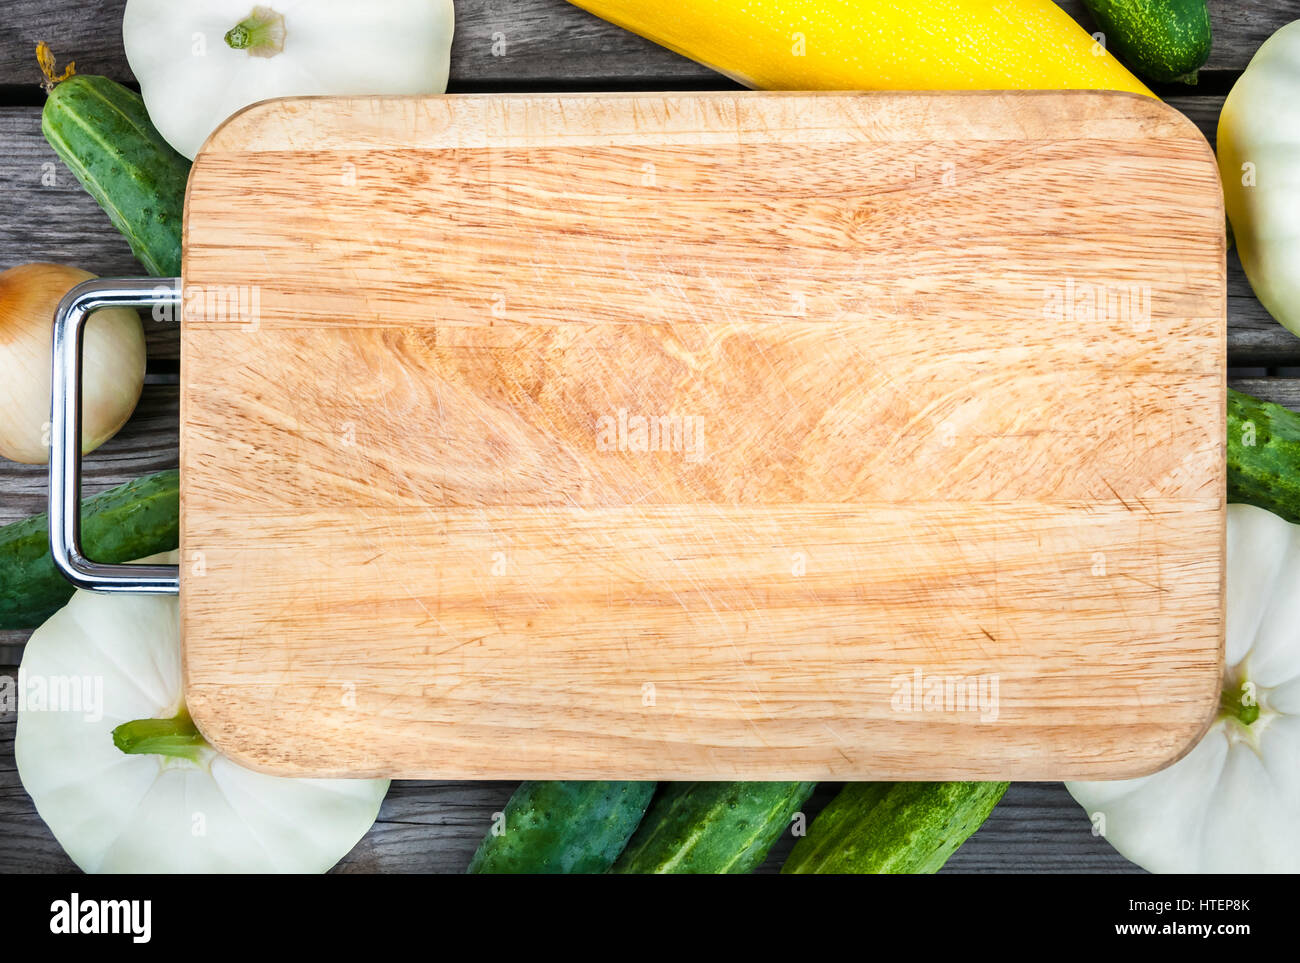 Cutting board, fresh vegetables on wooden table.  Top view with copy space. - Stock Image